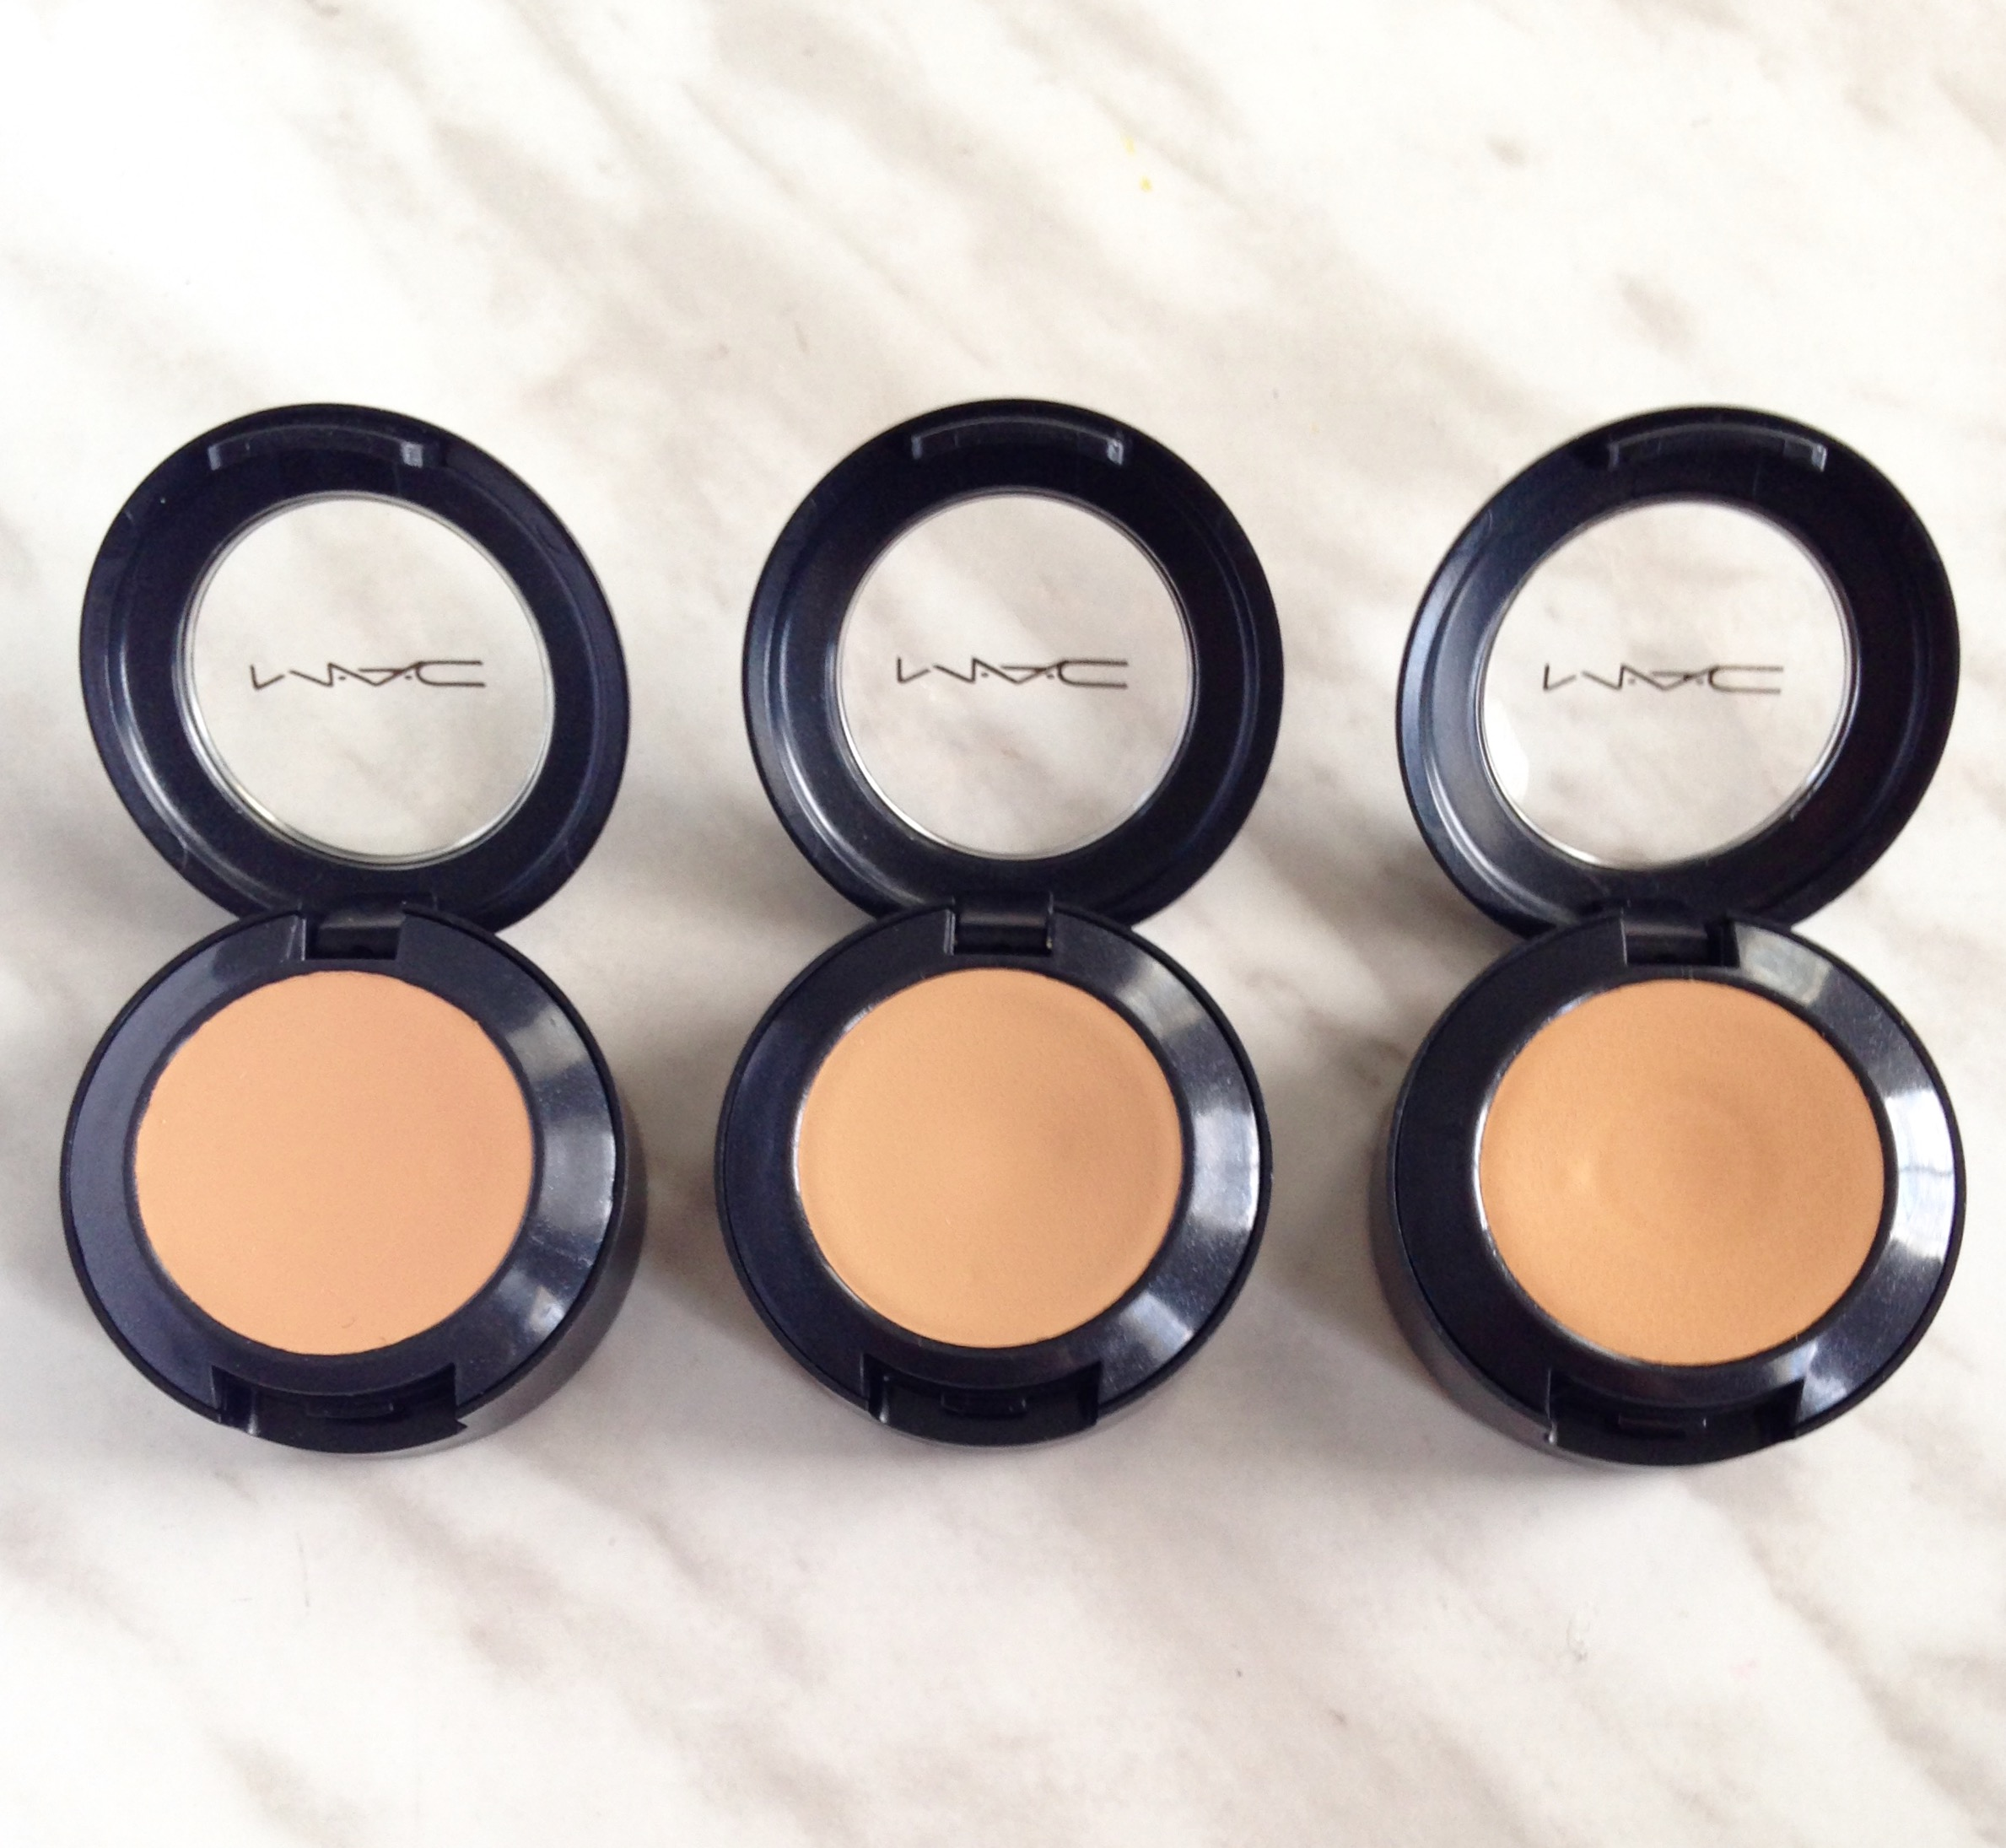 Mac studio finish concealer aiishwarya the mac studio finish spf 35 concealer comes in a pot which is probably the biggest difference from the glass pro longwear concealer ive loved for so nvjuhfo Gallery